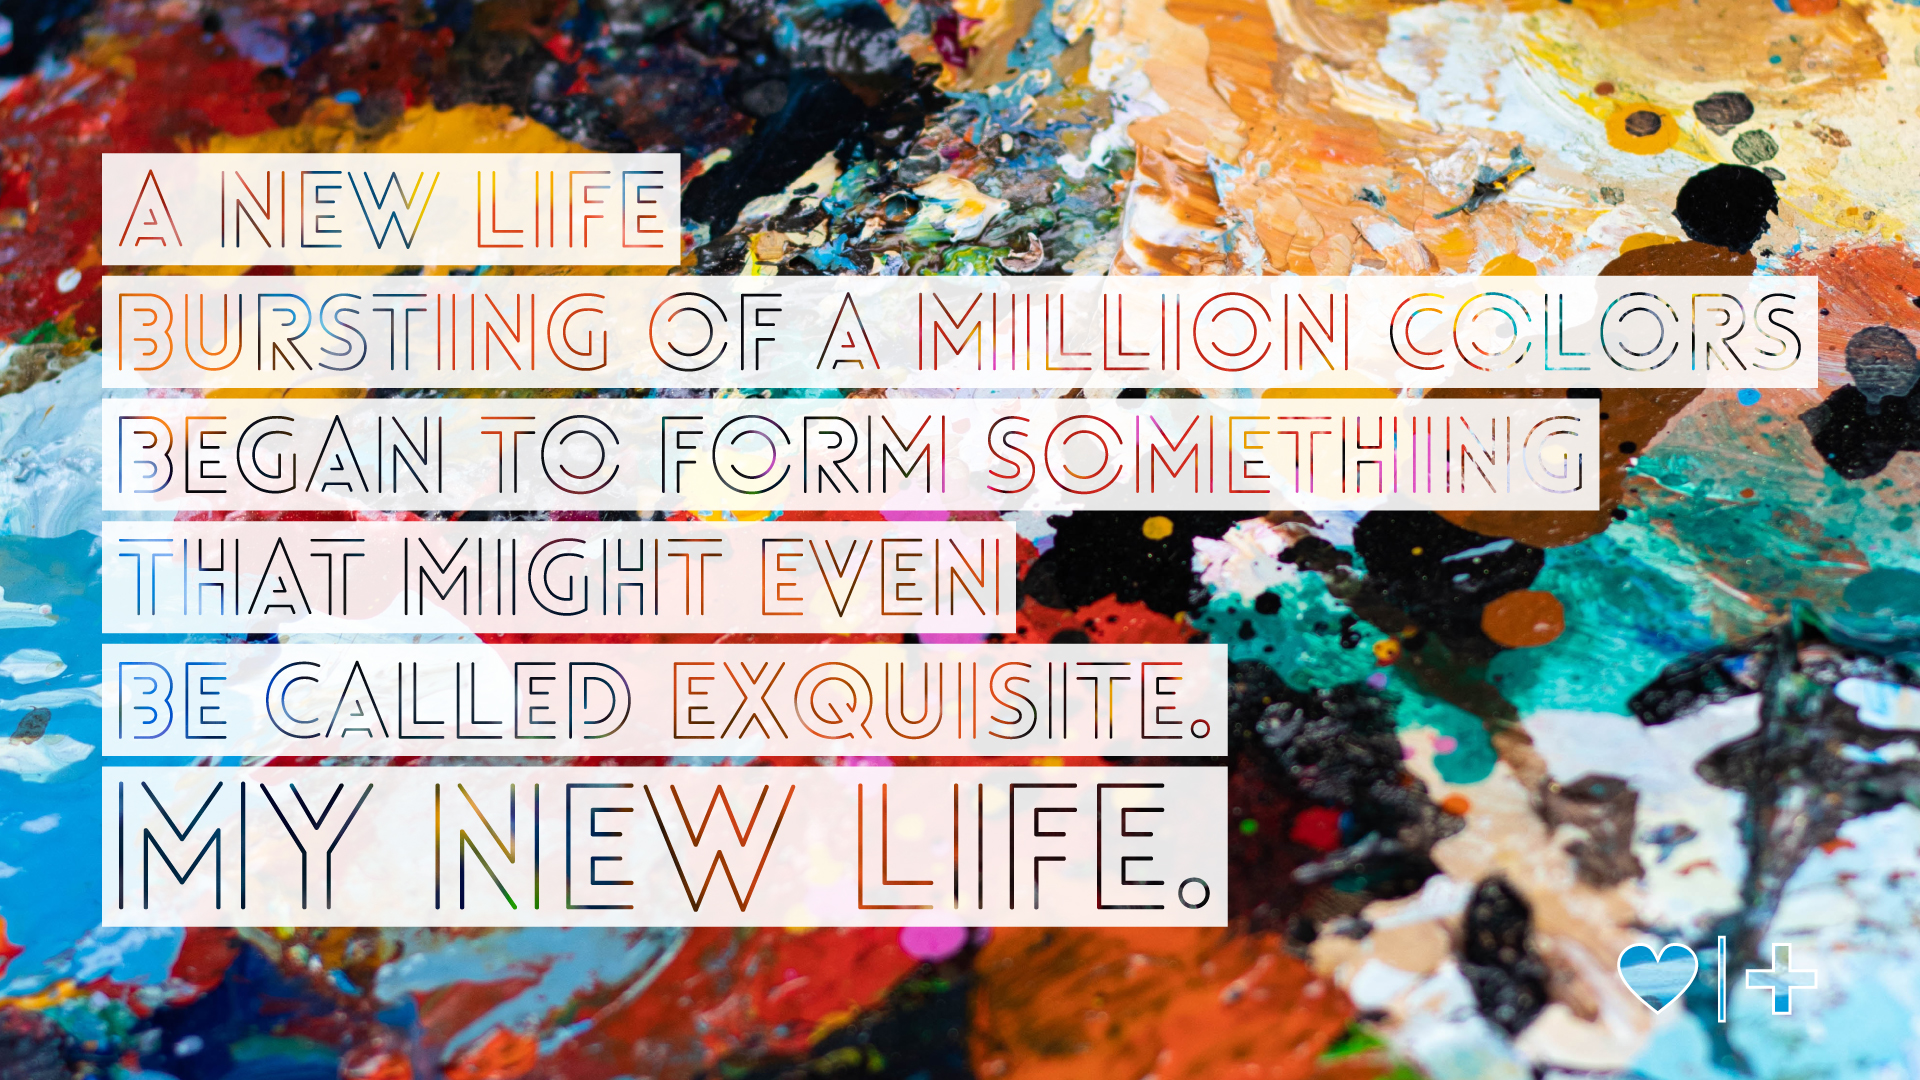 affair recovery-survivors blog-christine-my new life a mosaic-a new life bursting of a million colors began to form something that might even be called exquisite my new life